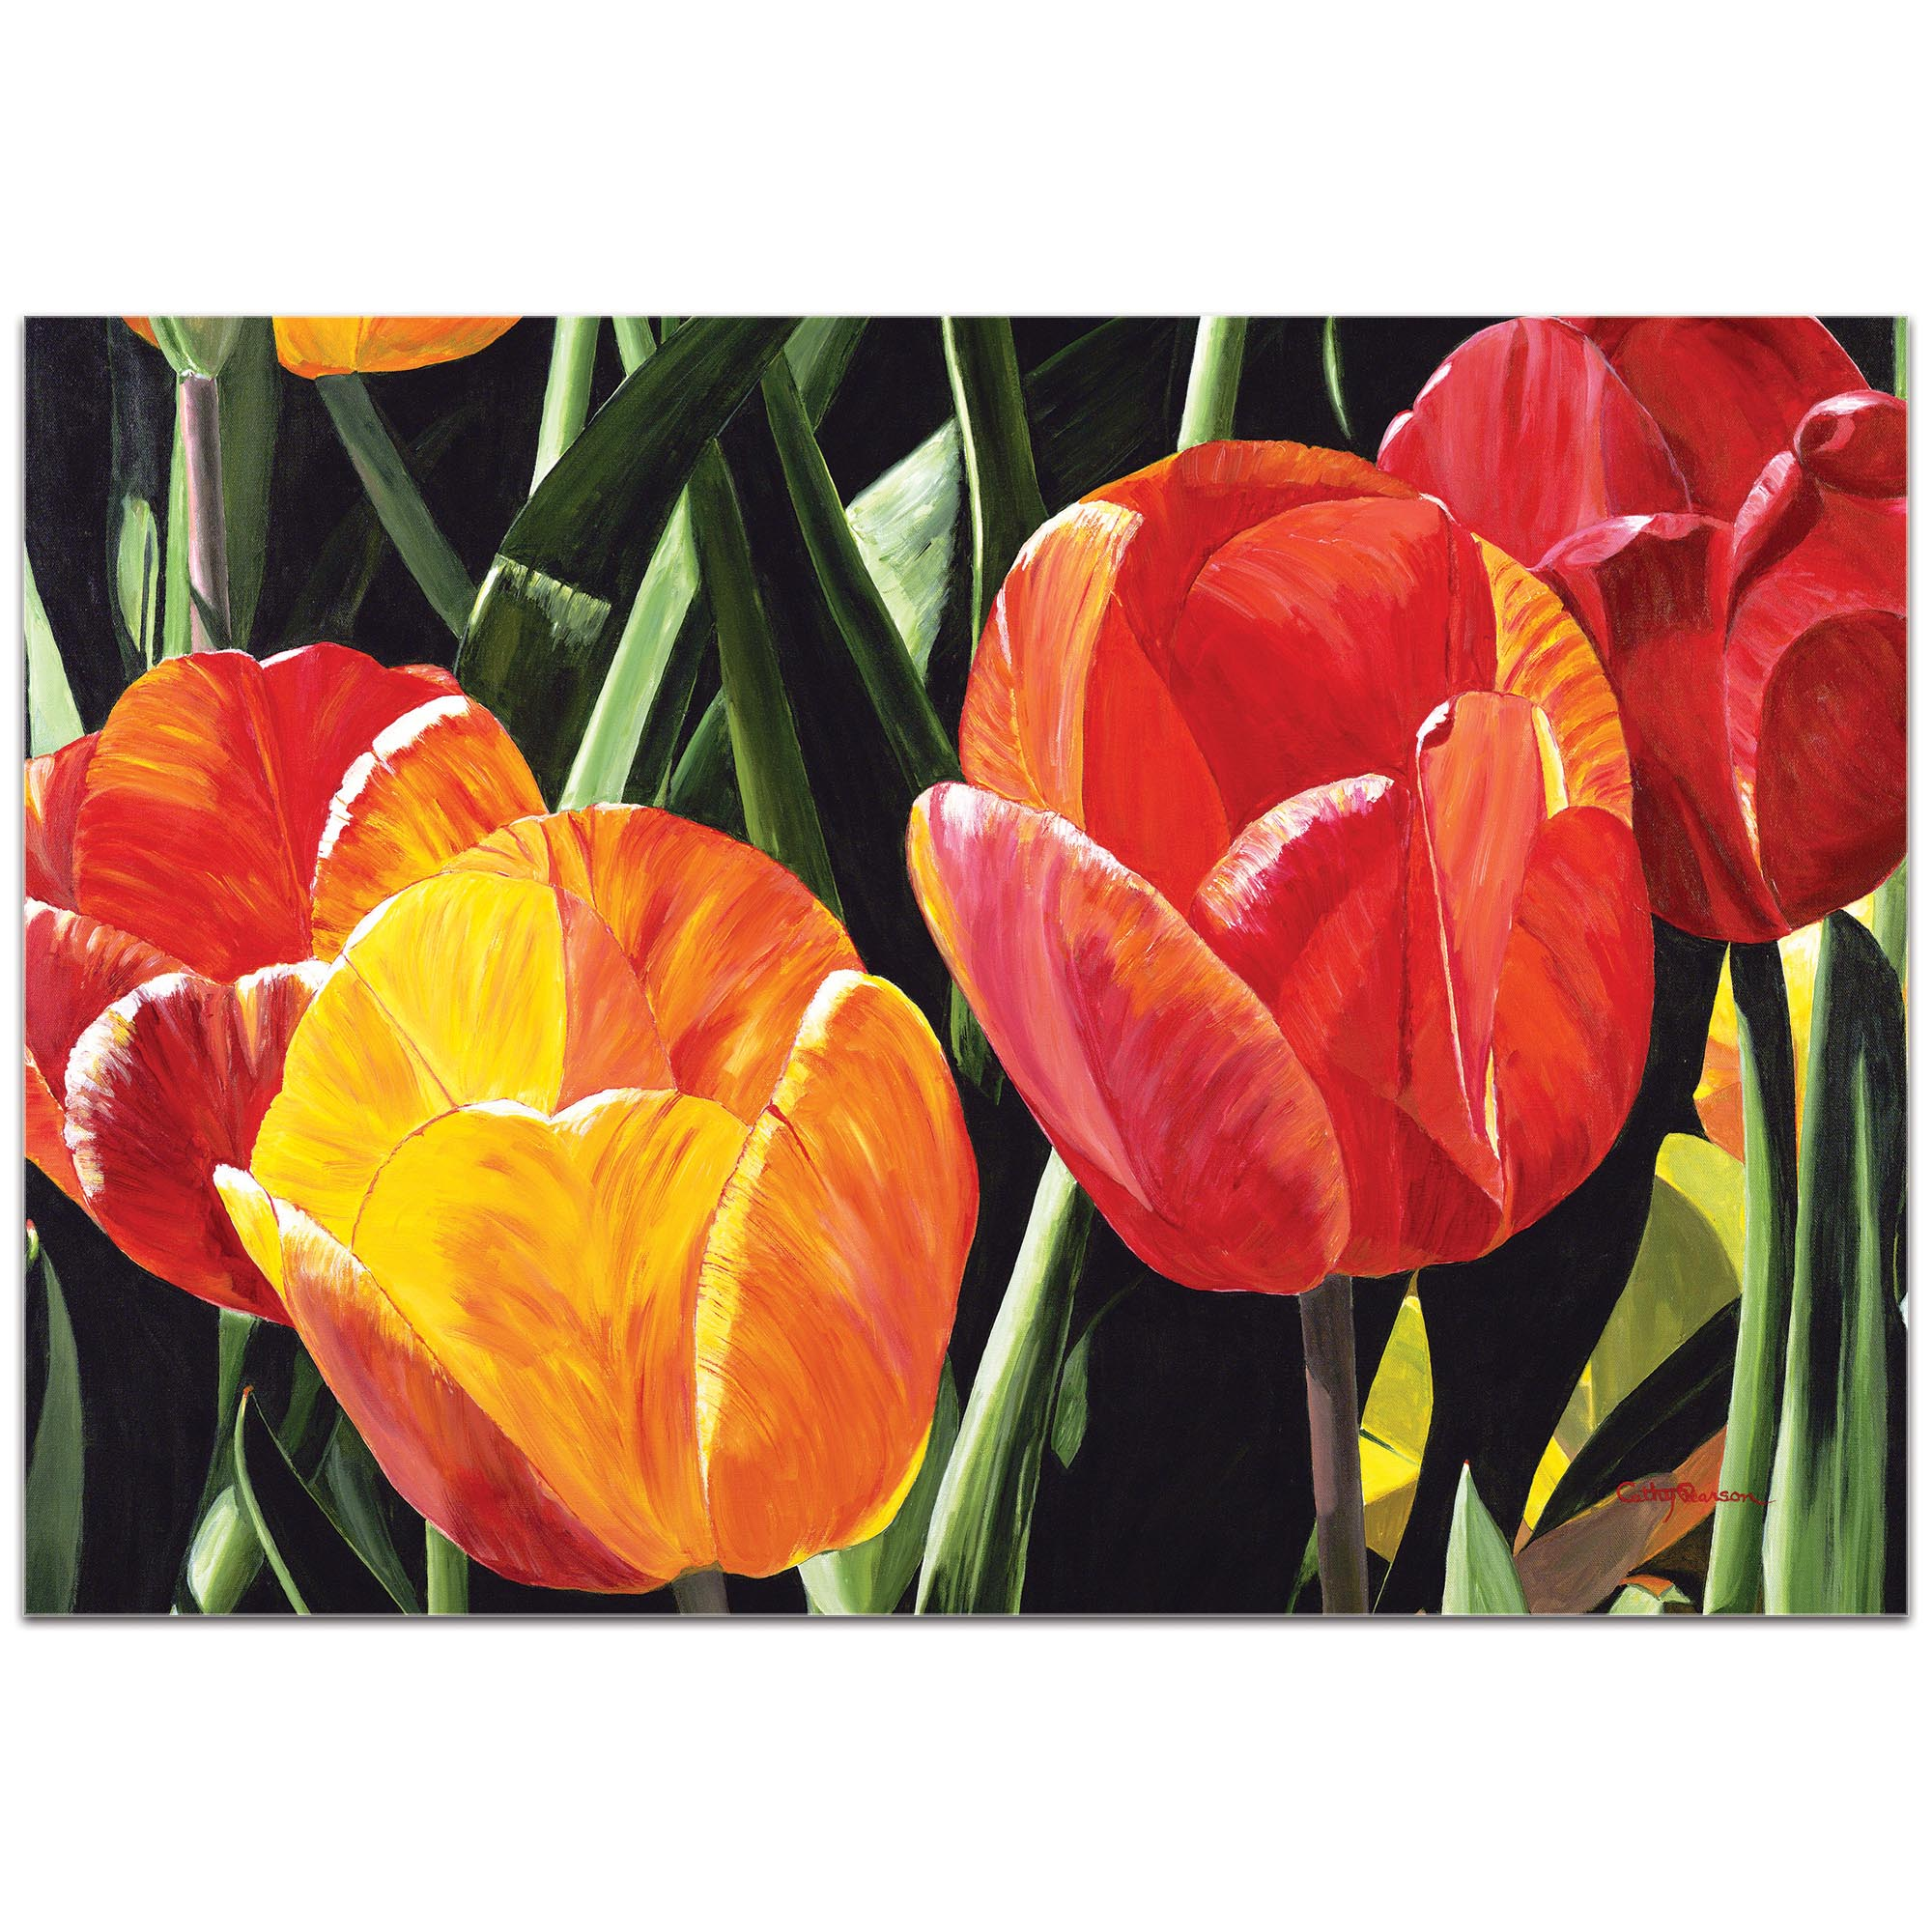 Traditional Wall Art 'Tulip Field' - Floral Decor on Metal or Plexiglass - Image 2